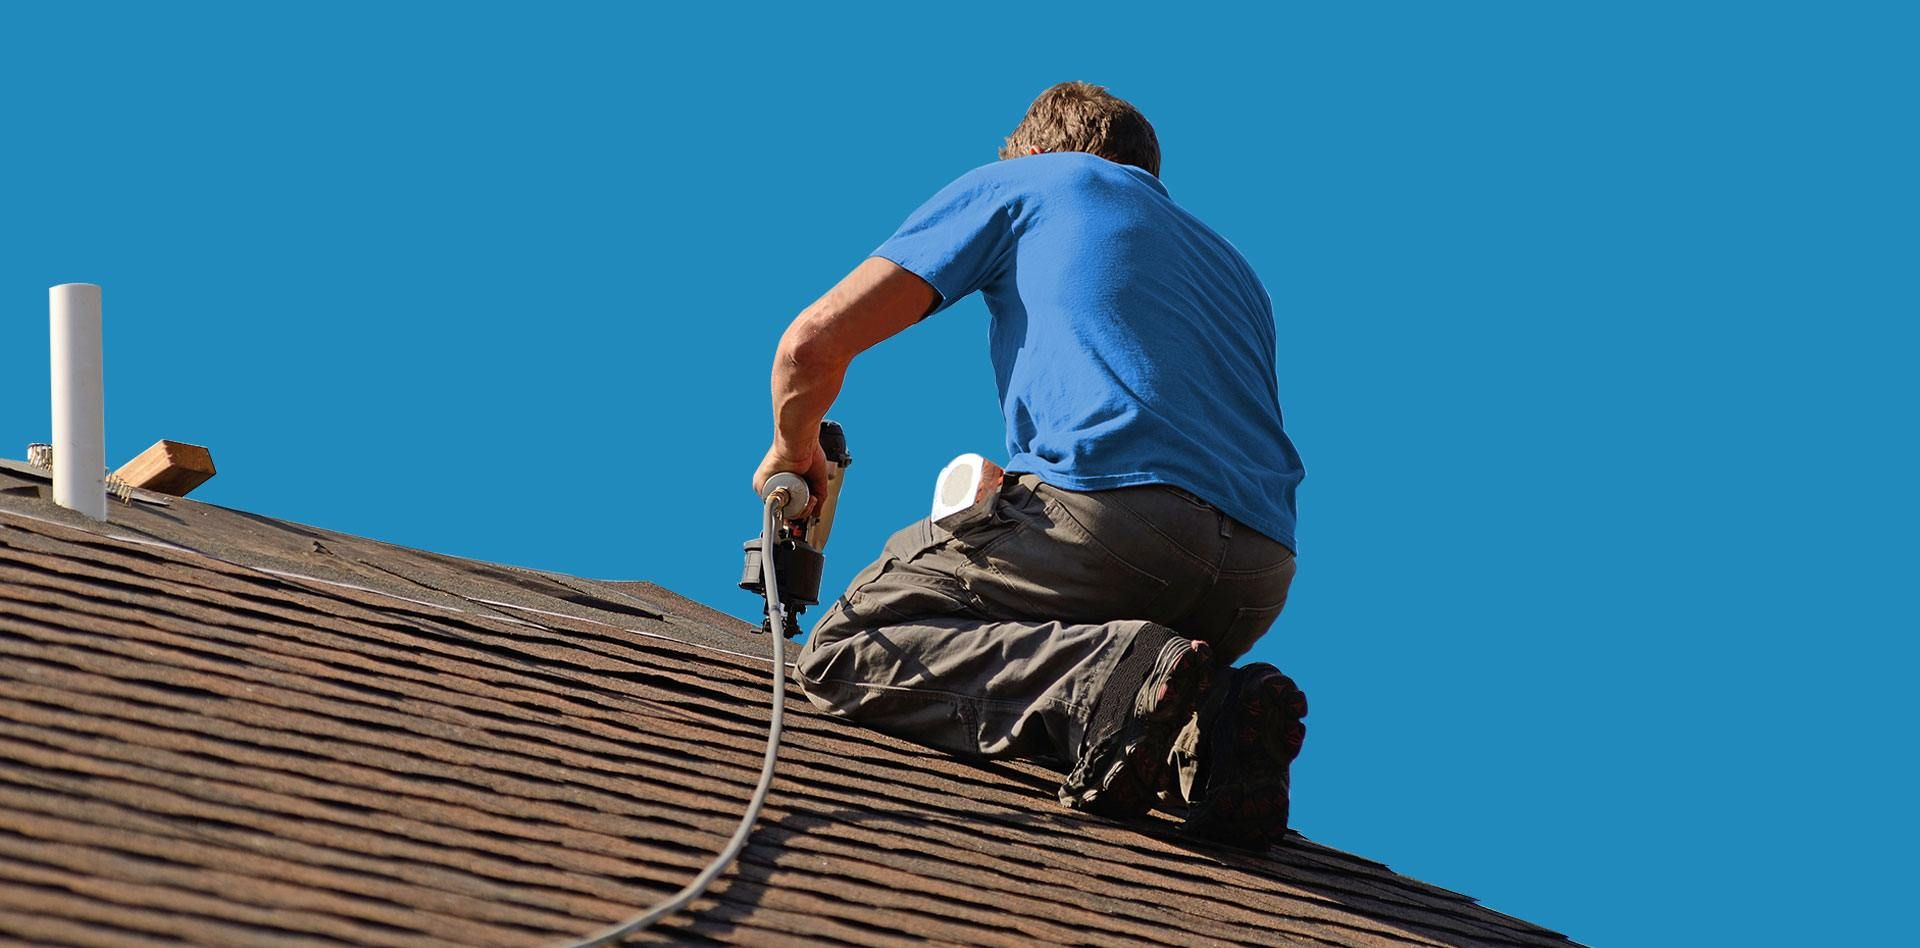 Roofing Repair Inspection And Replacement In Round Rock Tx By Wdr Roofing Roof Repair Round Rock Tx Roofing Business